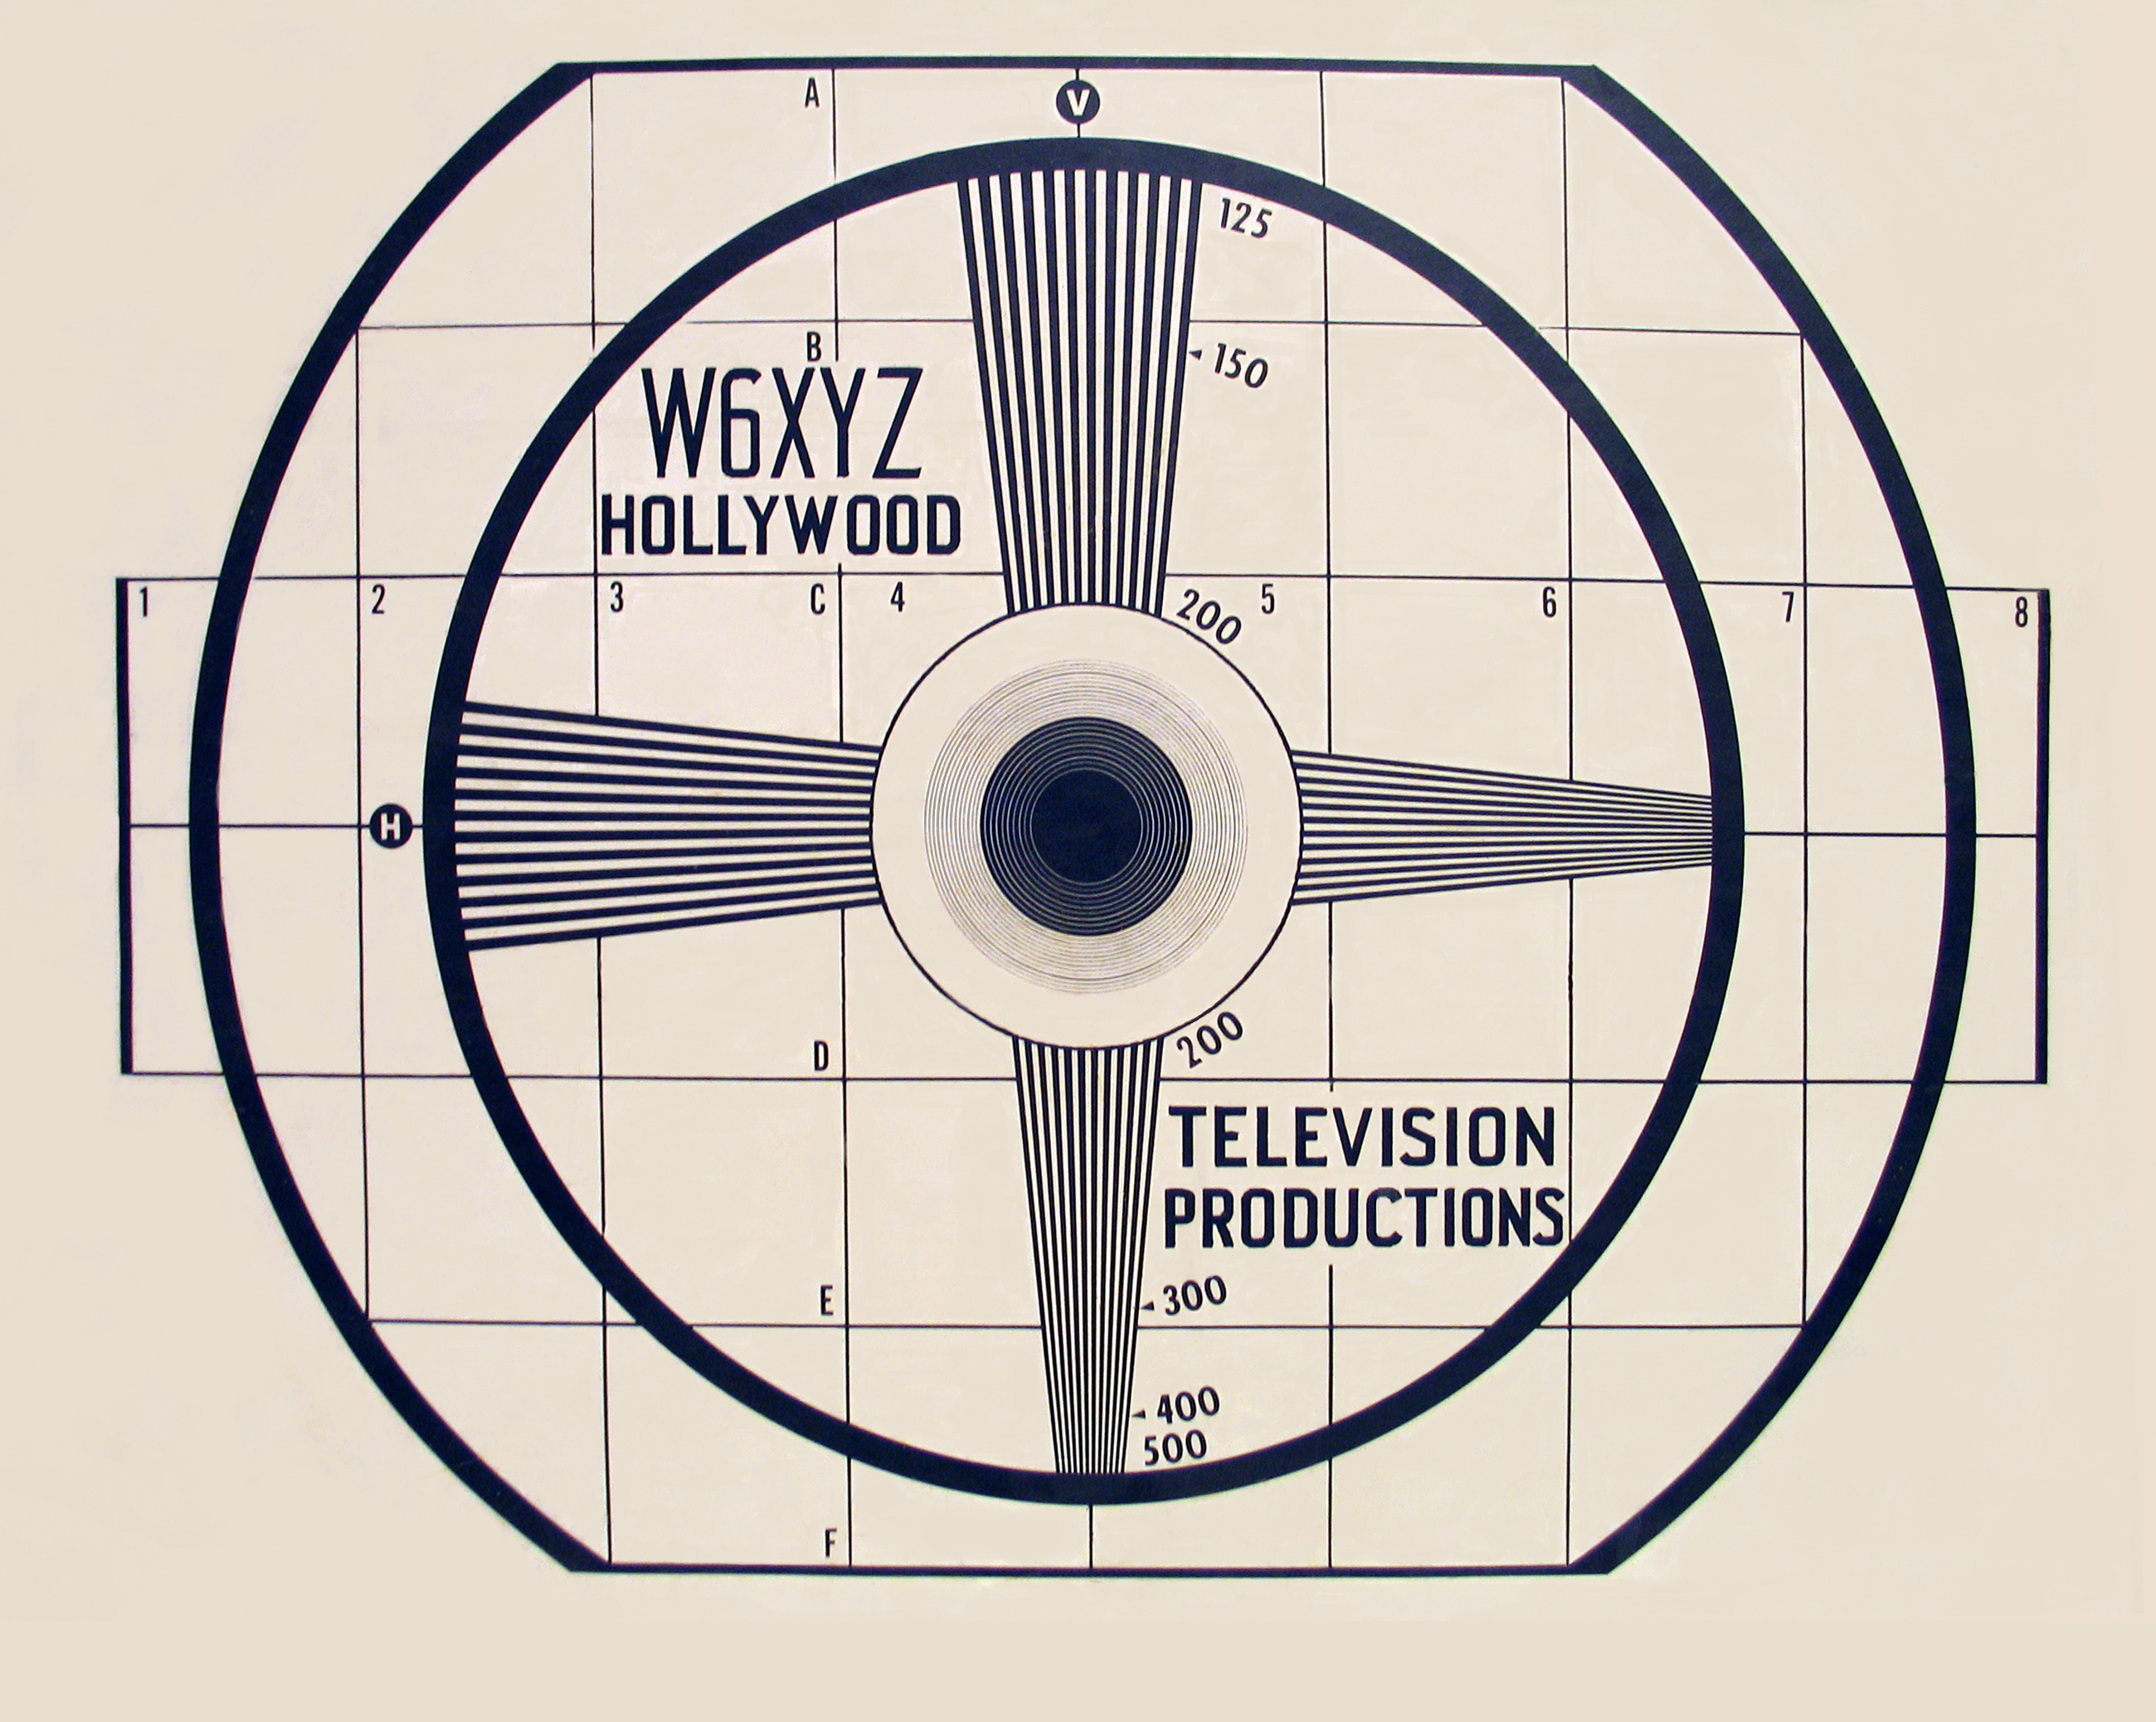 W6XYZ (KTLA) test pattern - 1940s